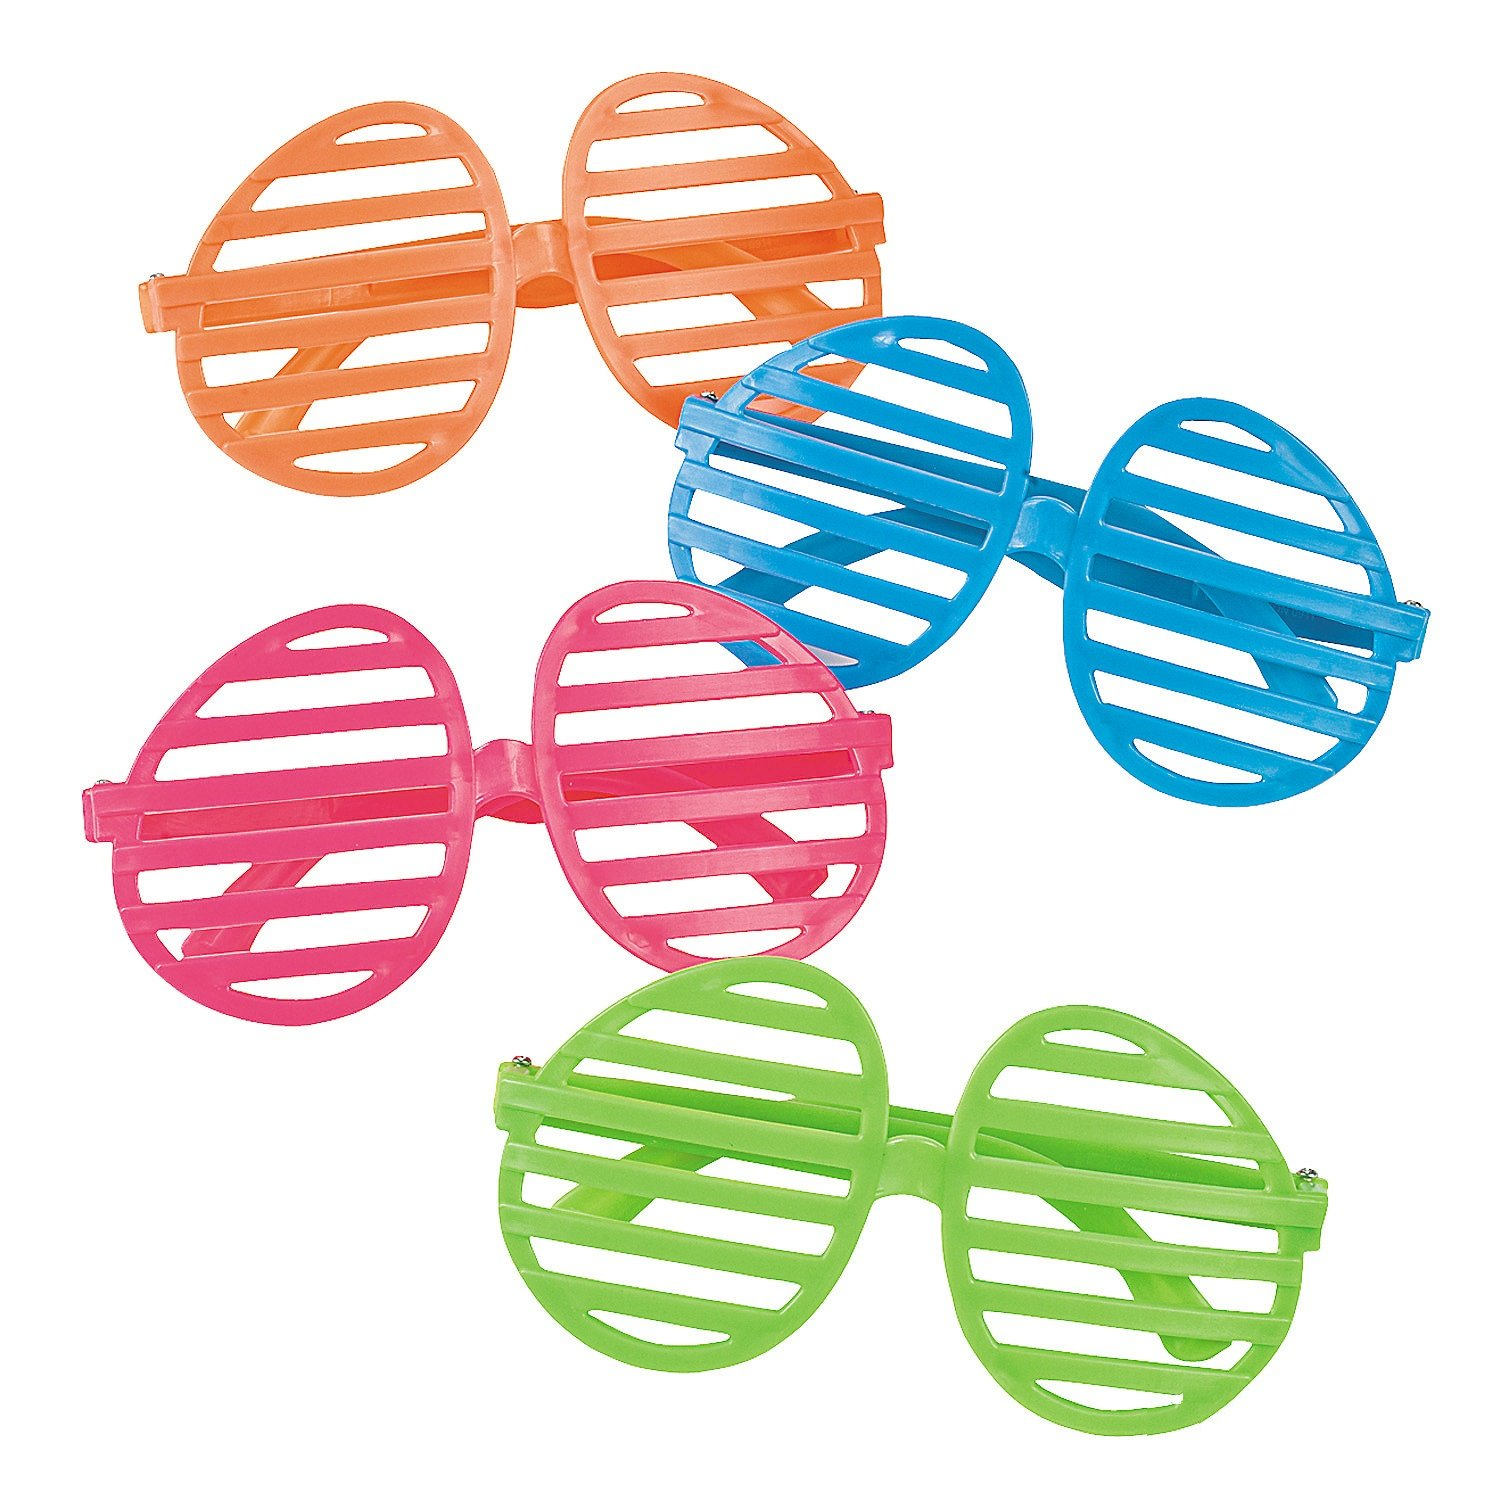 """Easter Egg-shaped Shading Glasses Bright Neon Colors (12 Pack) 5"""" X 2 1/2"""" with 5 1/4"""" Ear Pieces. Plastic"""